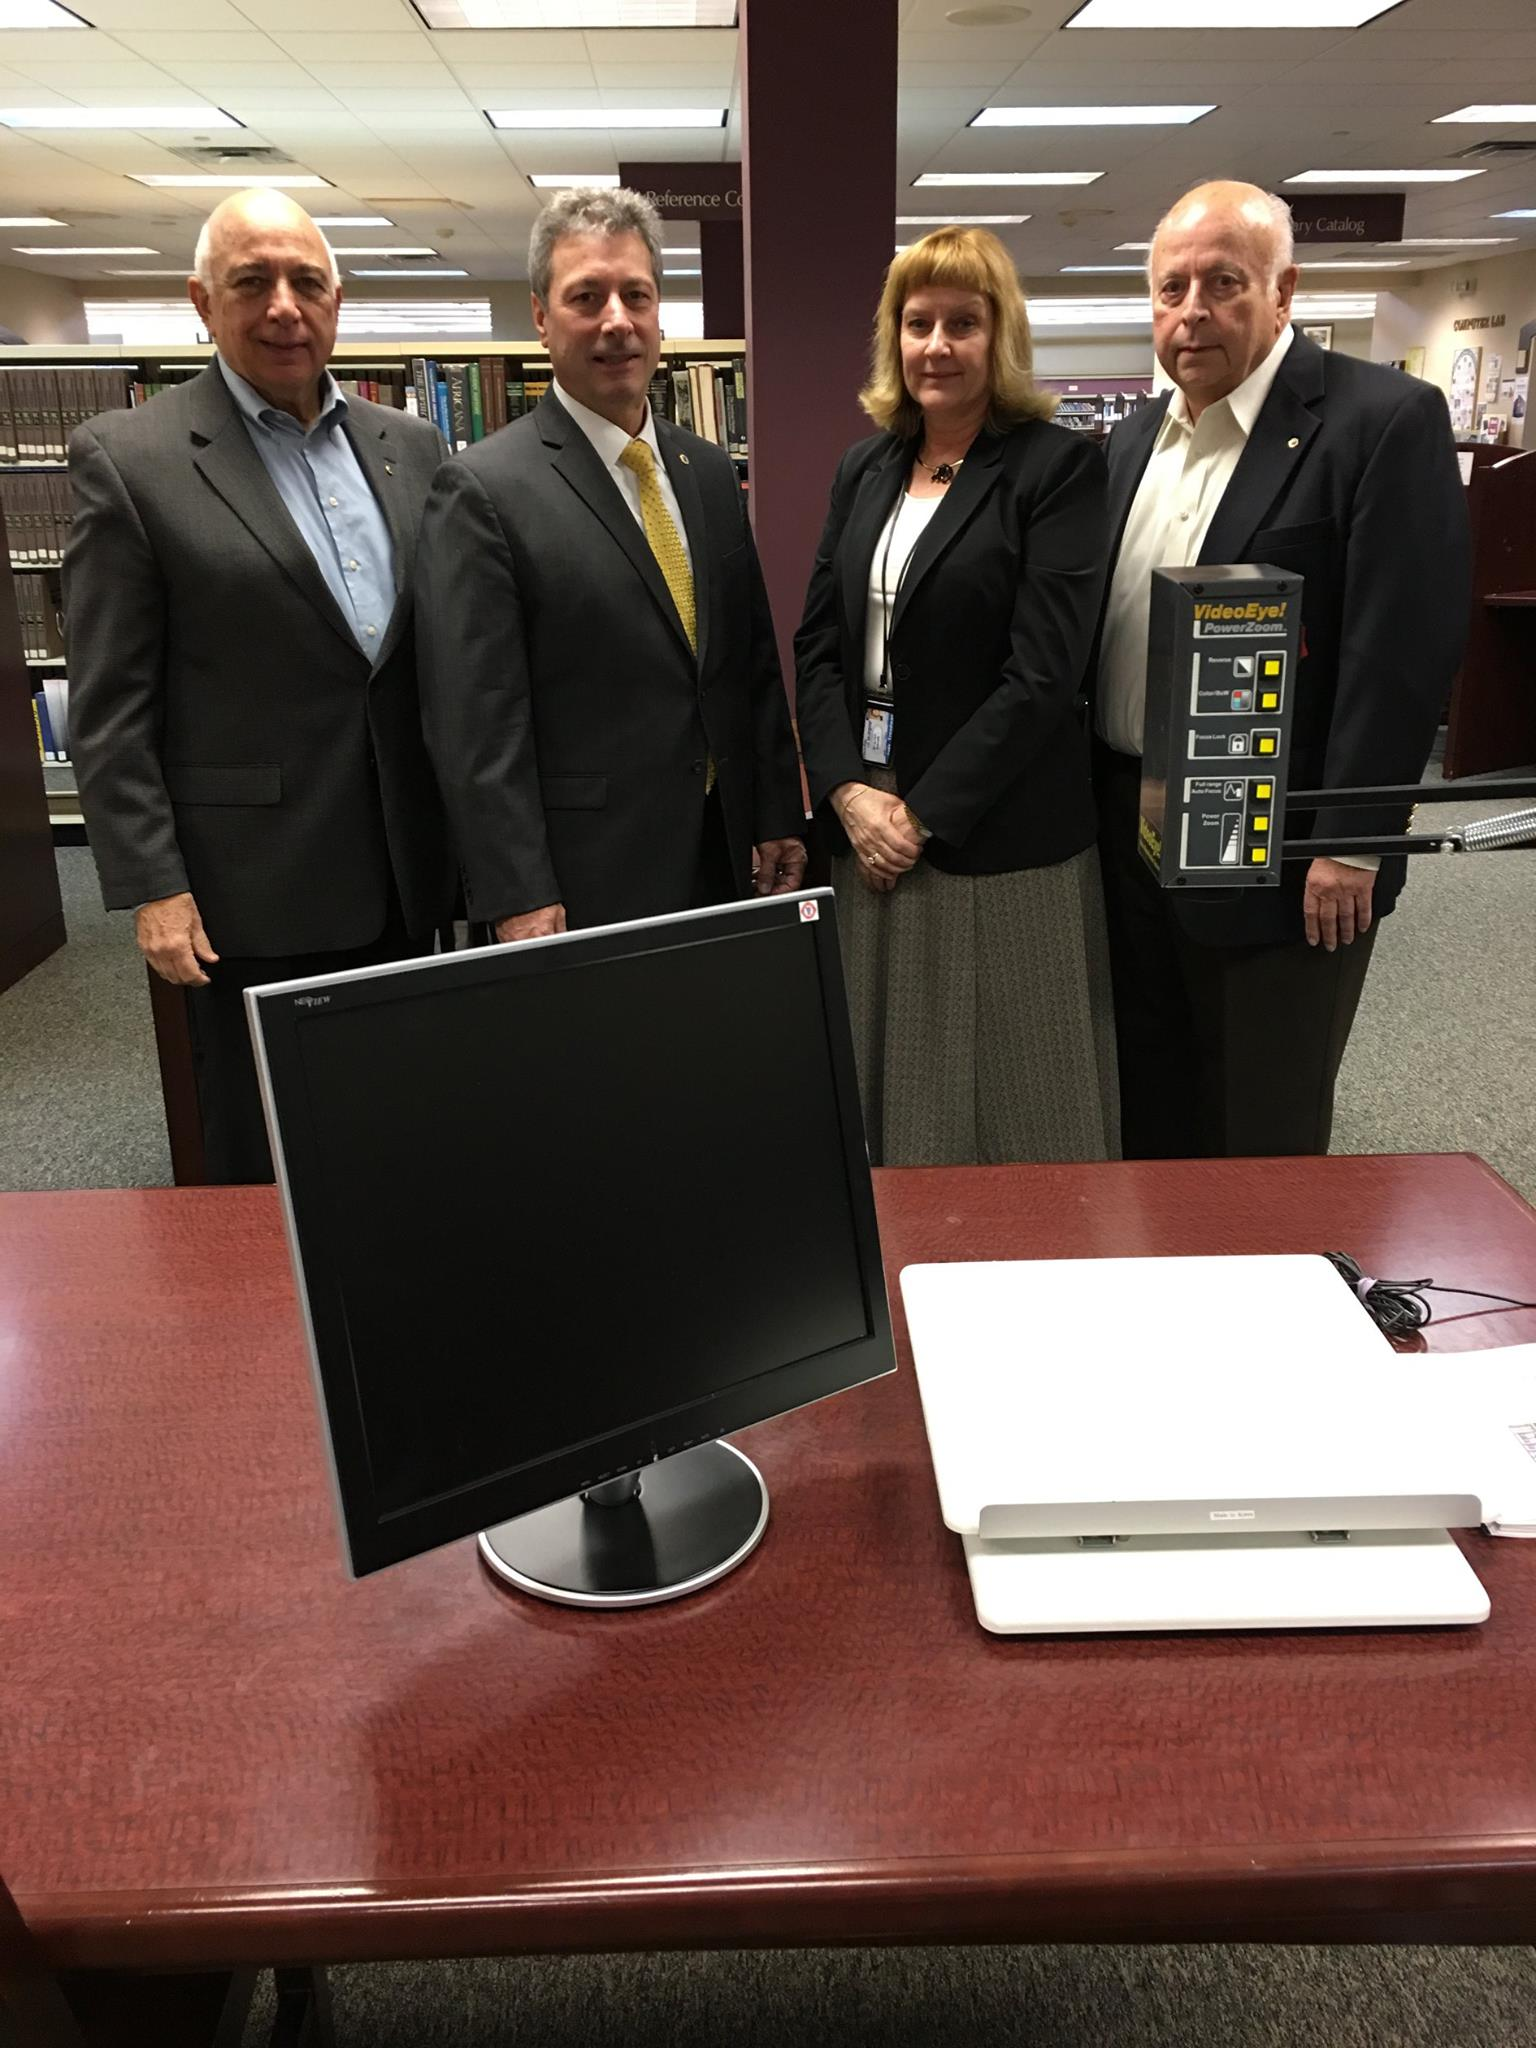 Wayne Lions Donate a VideoEye Machine to Wayne Public Library